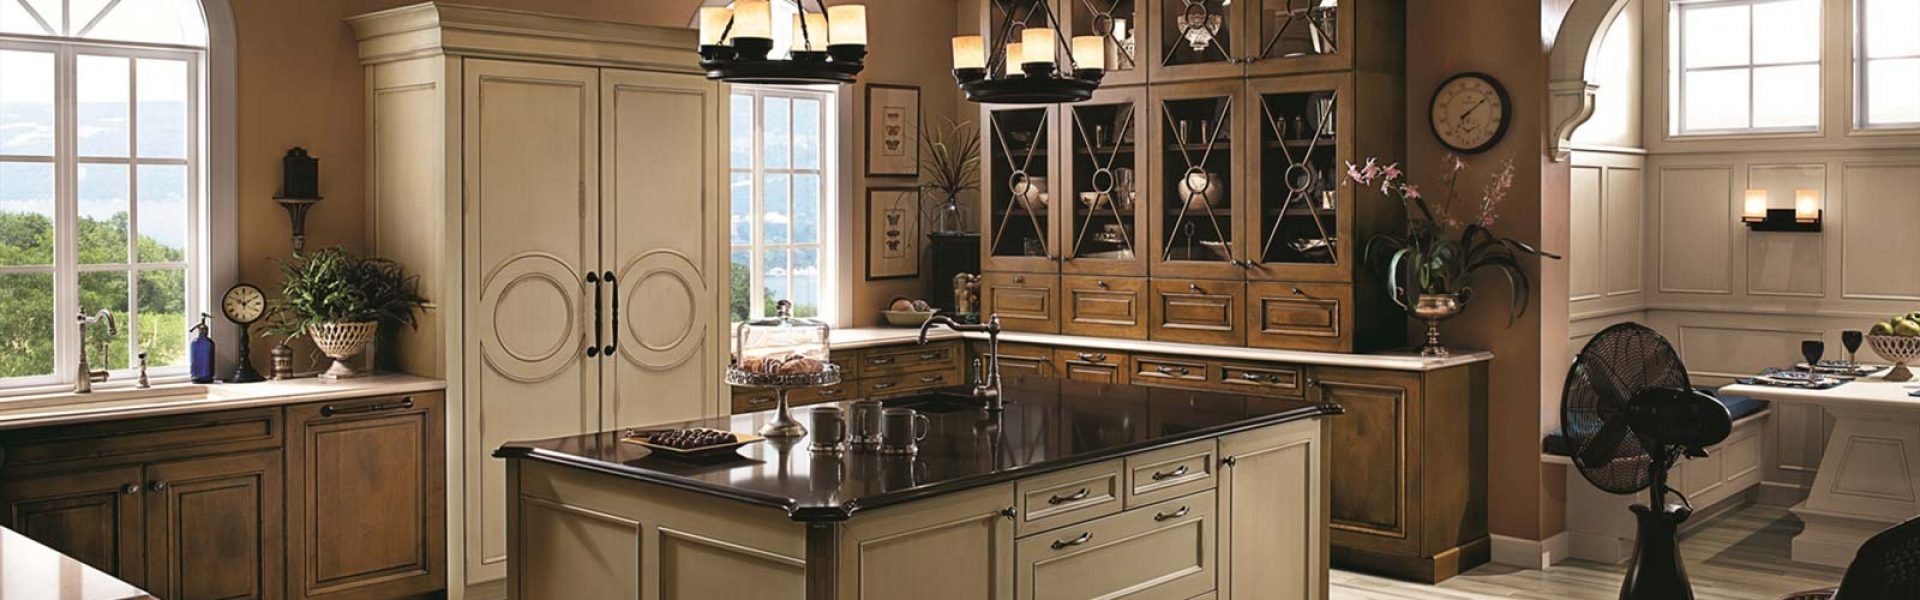 Kitchen Concepts & Design